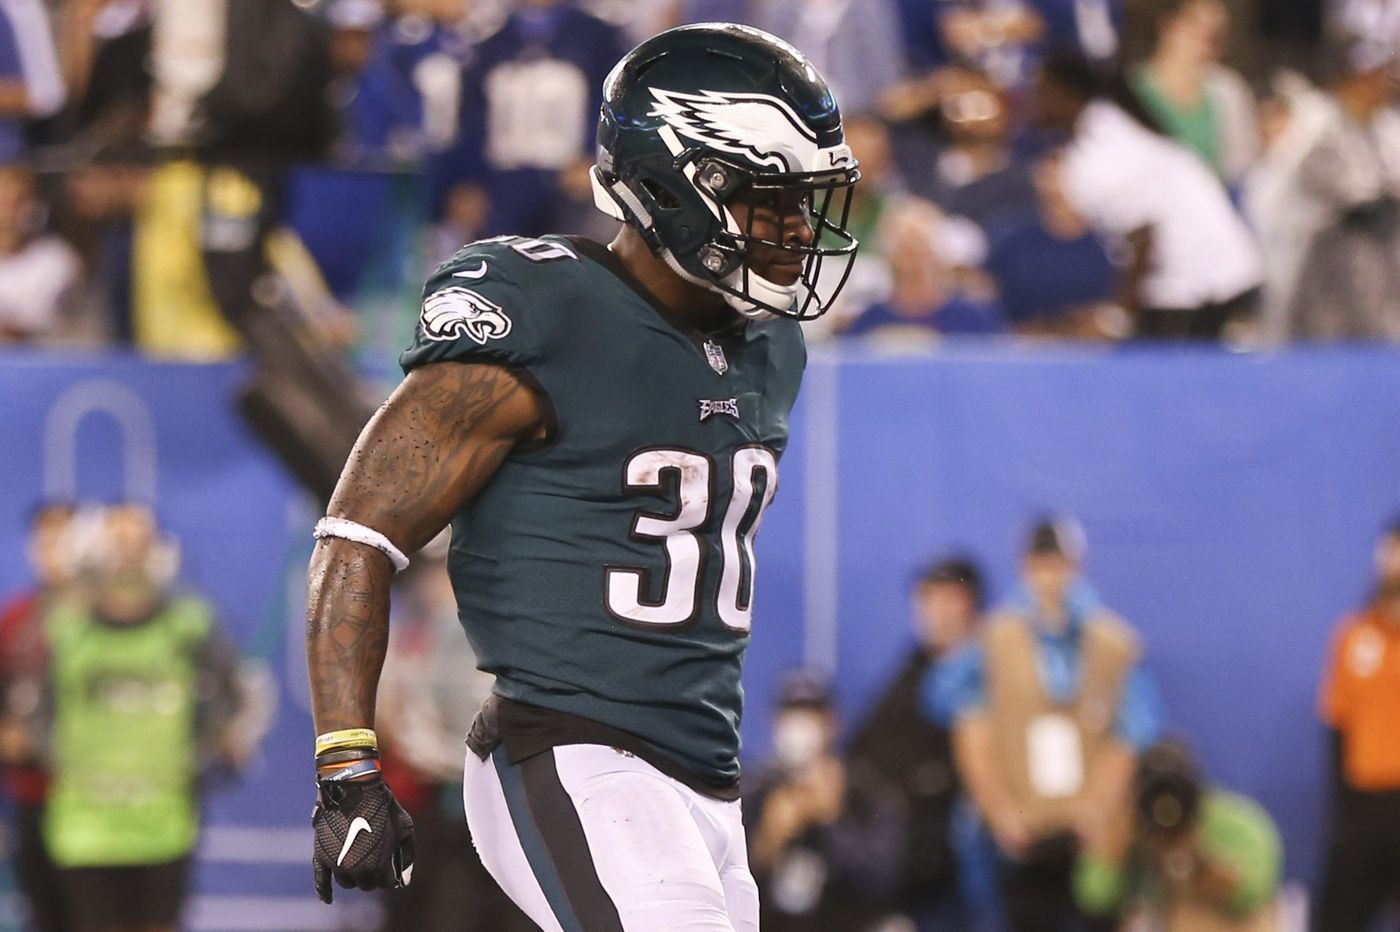 Eagles running backs Wendell Smallwood, Corey Clement give solid effort in win over Giants